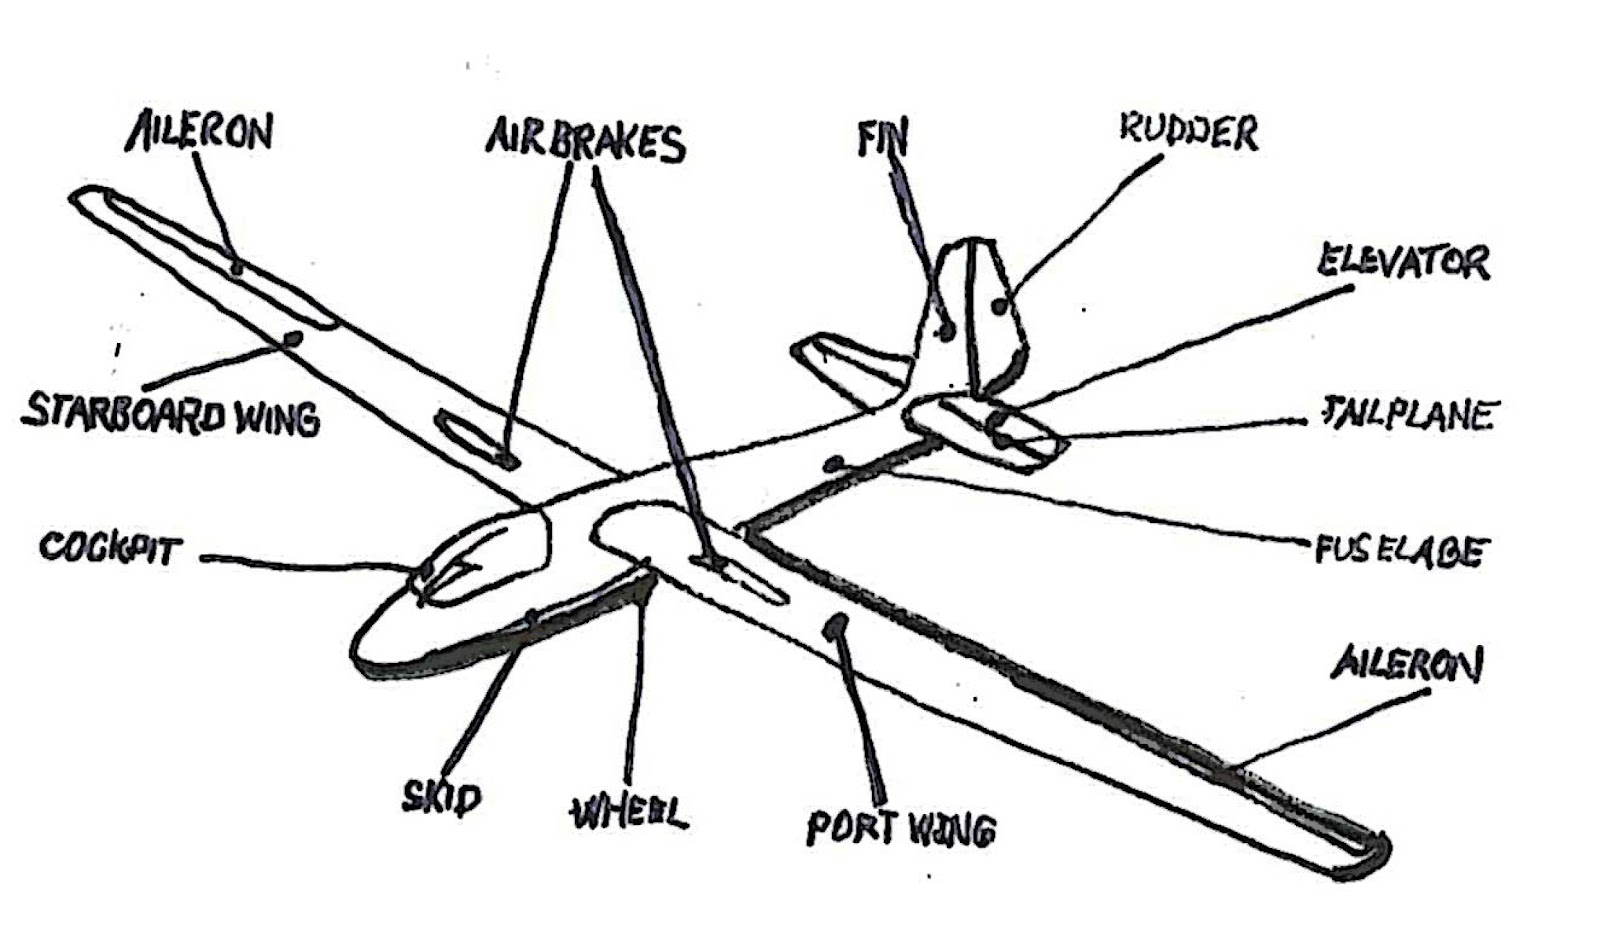 airplane wing parts diagram 1999 subaru impreza outback radio wiring with no engine free image for